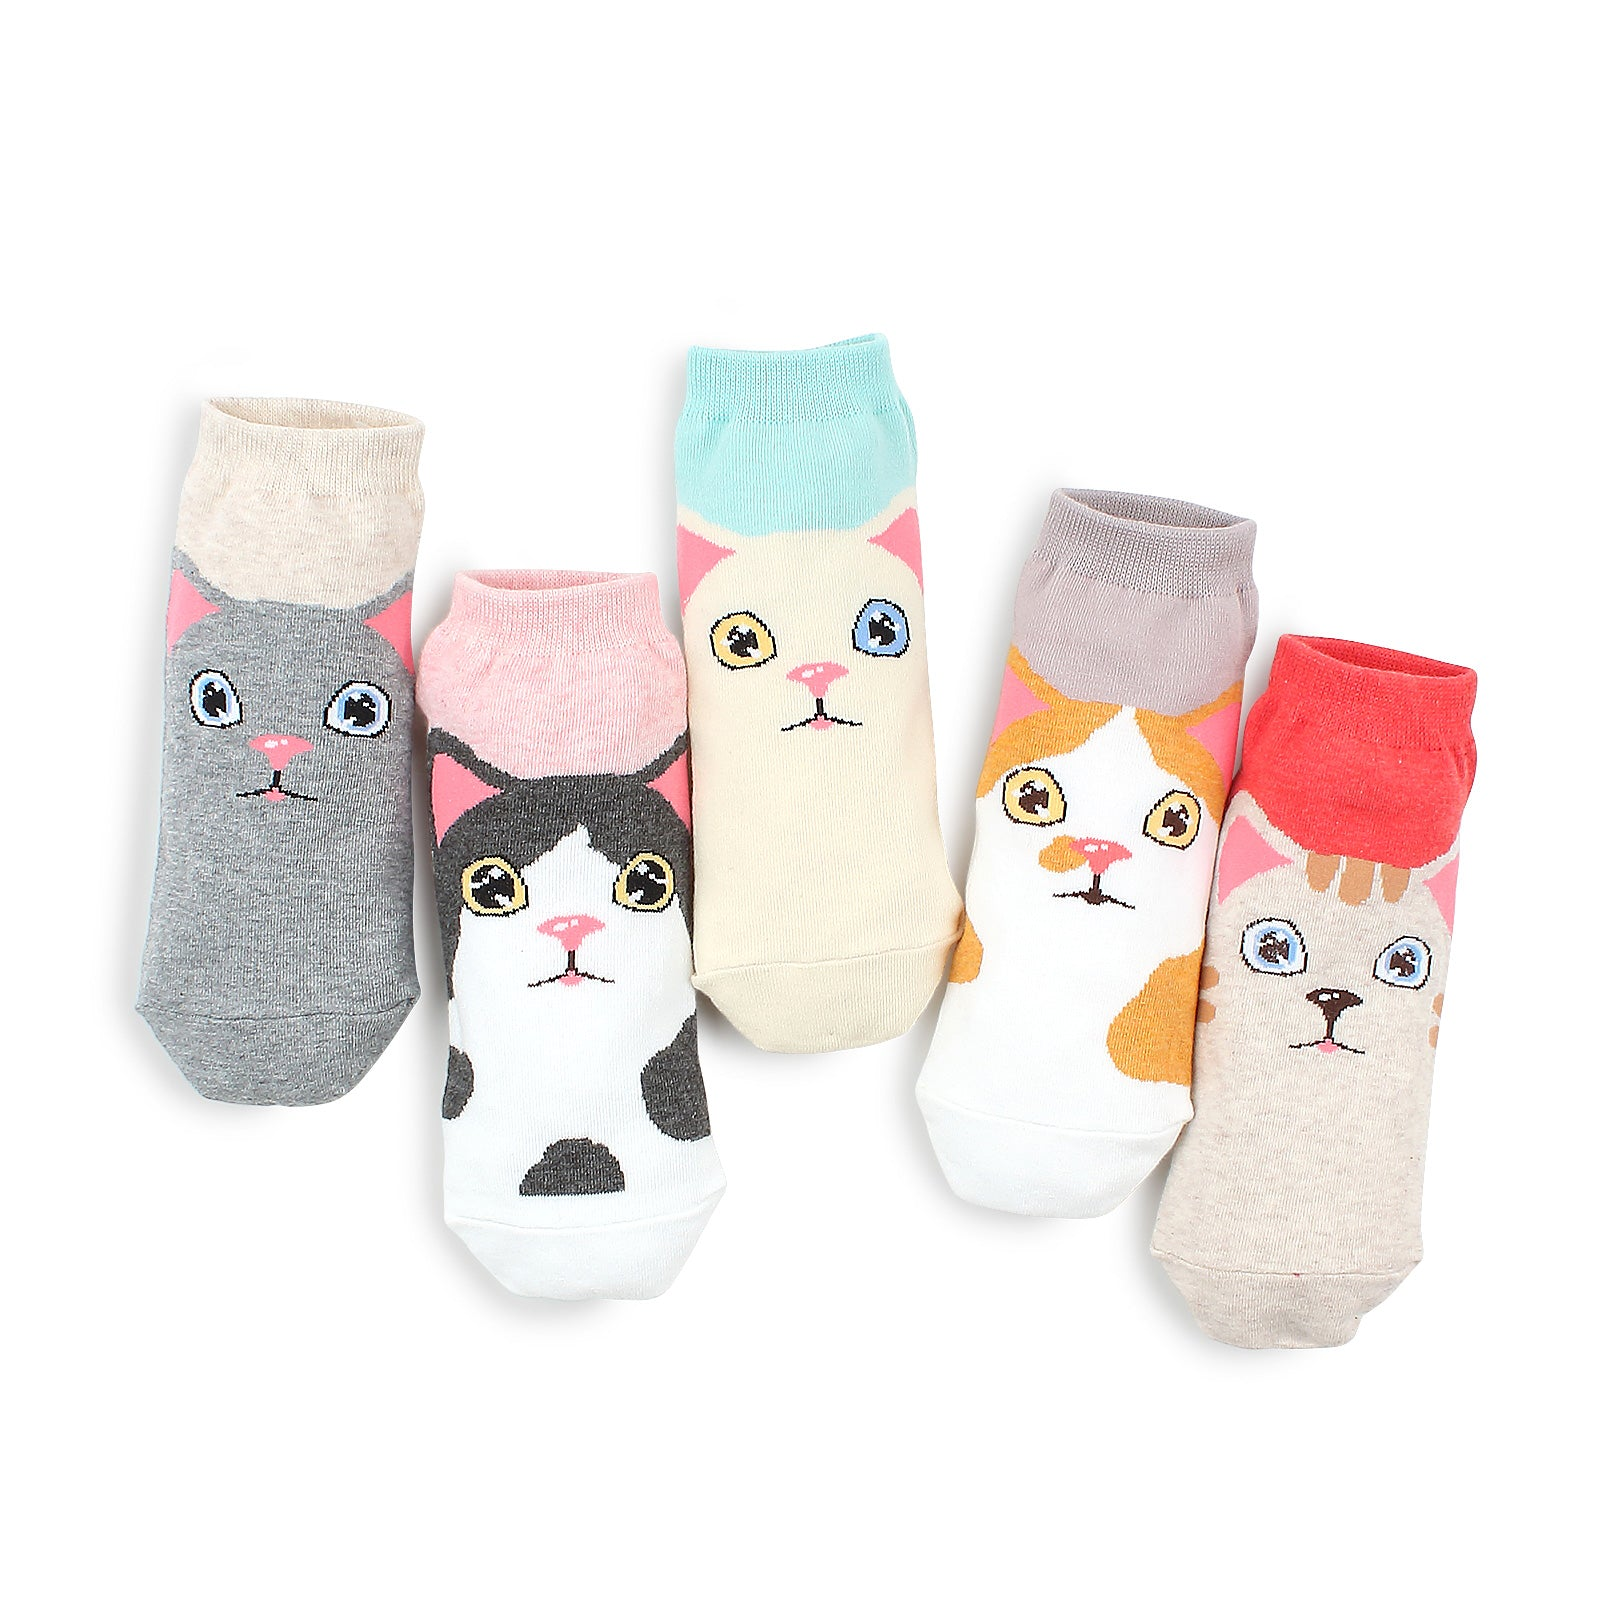 Odd eye kitten tabby cat socks (5 pairs) IR15 - intypesocks